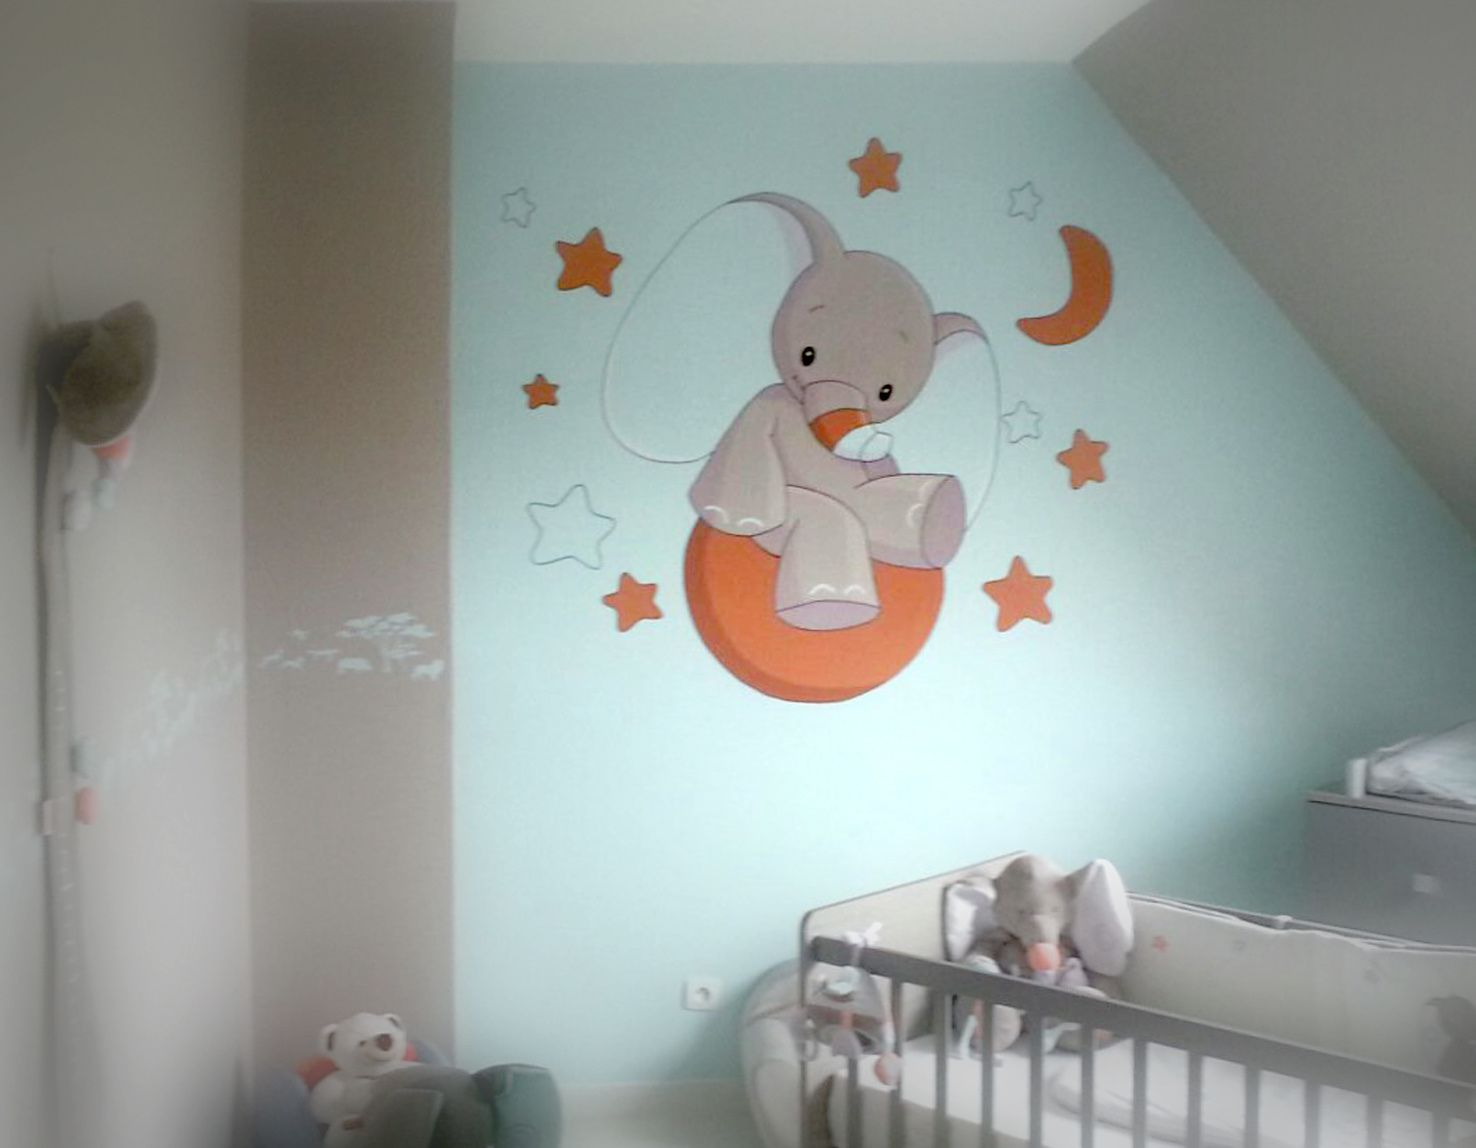 Decorations fresques seb peinture for Deco murale chambre bebe garcon